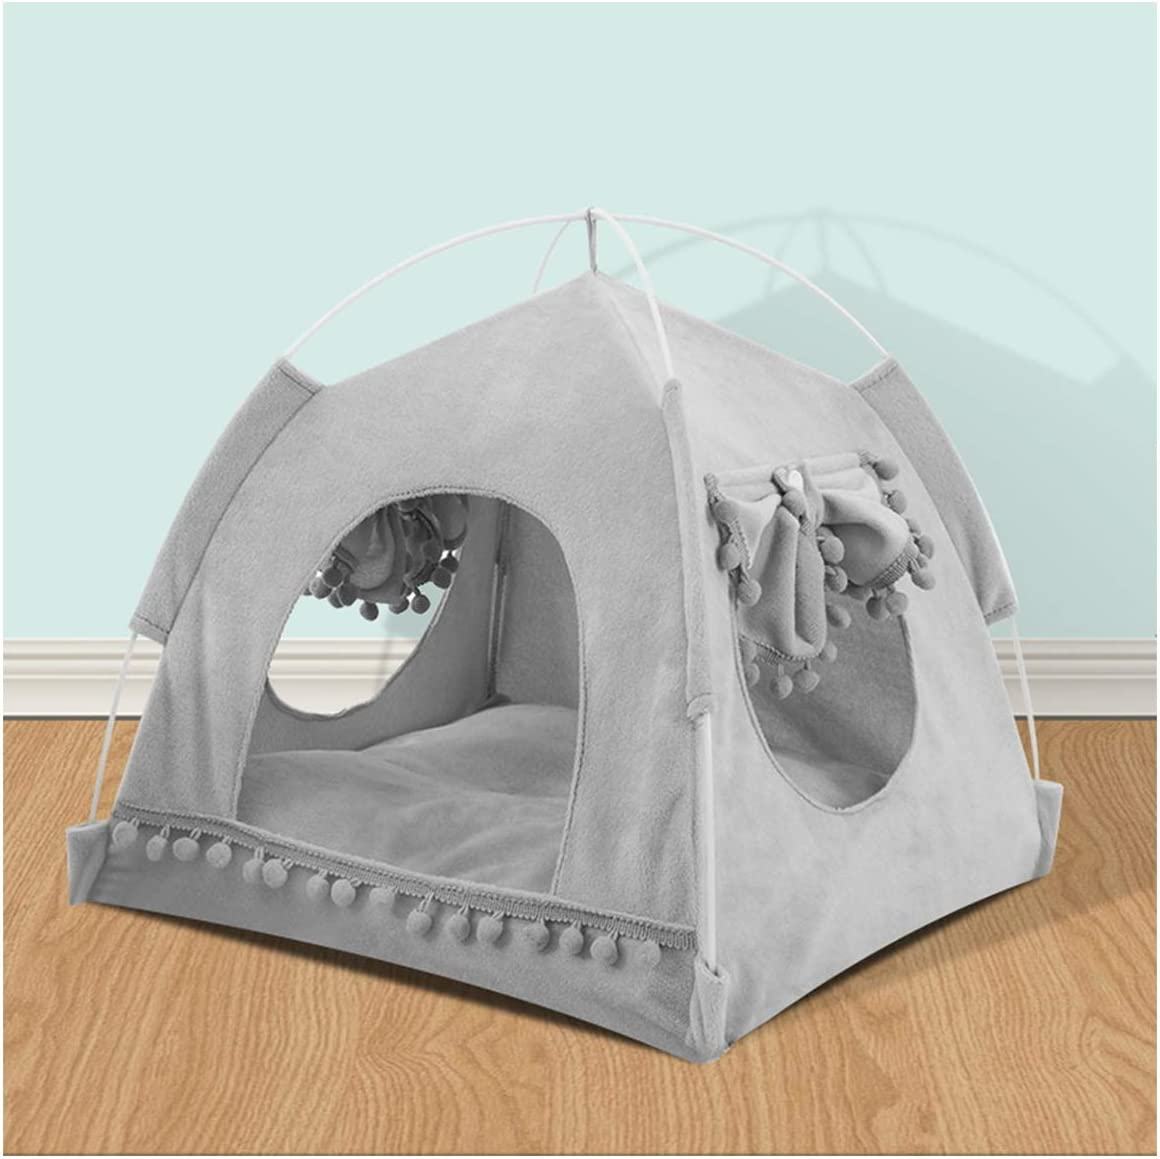 Saymequeen Cat Princess Indoor Tent House Small Cute Dog Pet Fashion Flo Superior